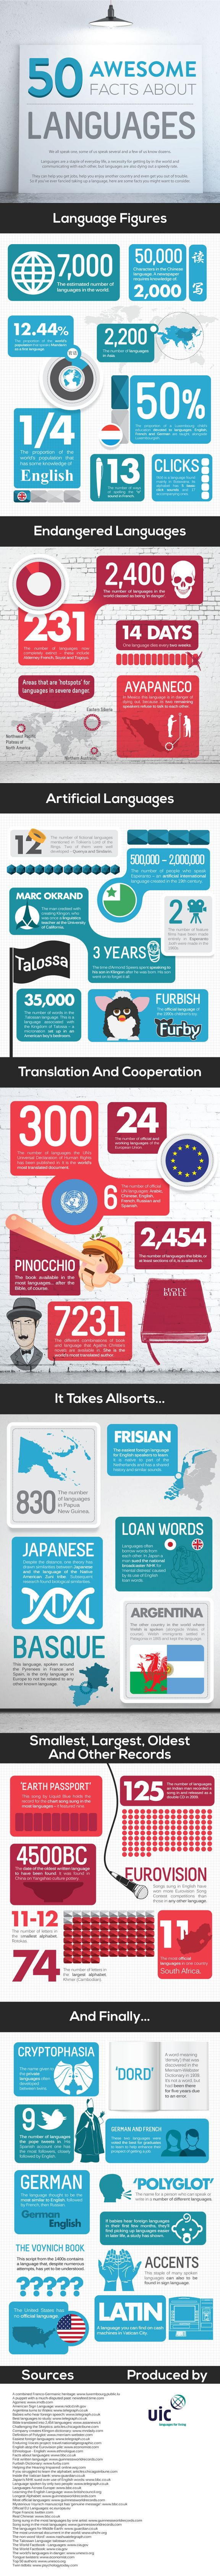 We must say that these 50 #language facts are indeed awesome! #infographic